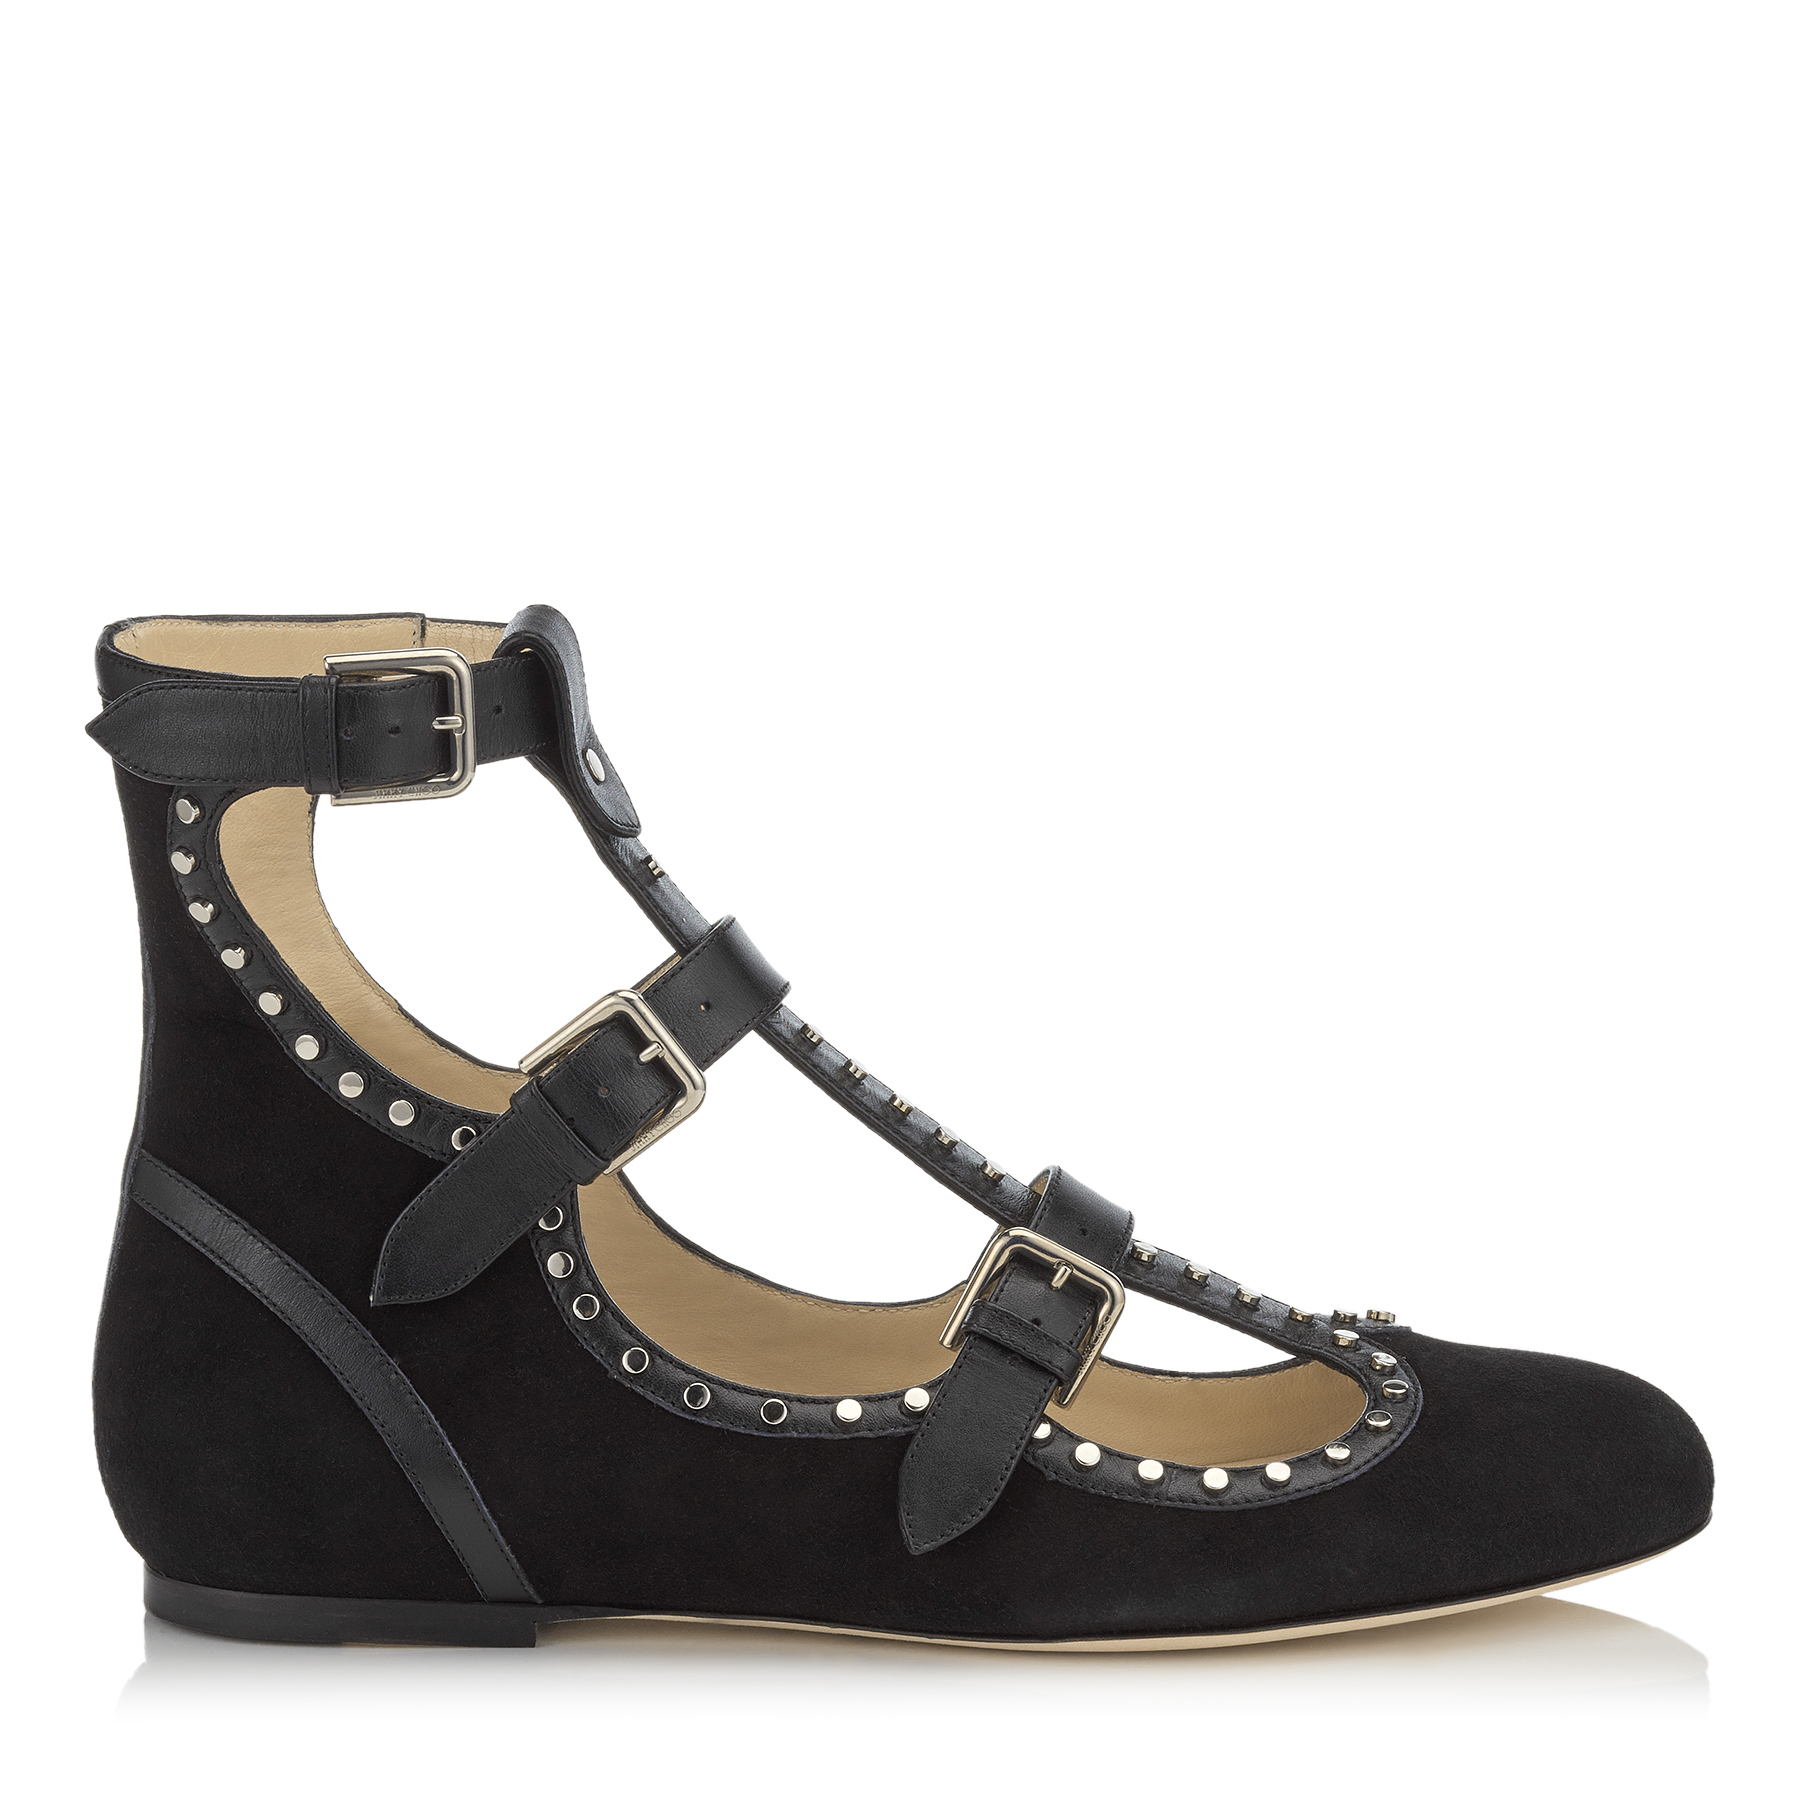 HARTLEY FLAT Black Suede and Shiny Leather Round Toe Flats with Studs by Jimmy Choo